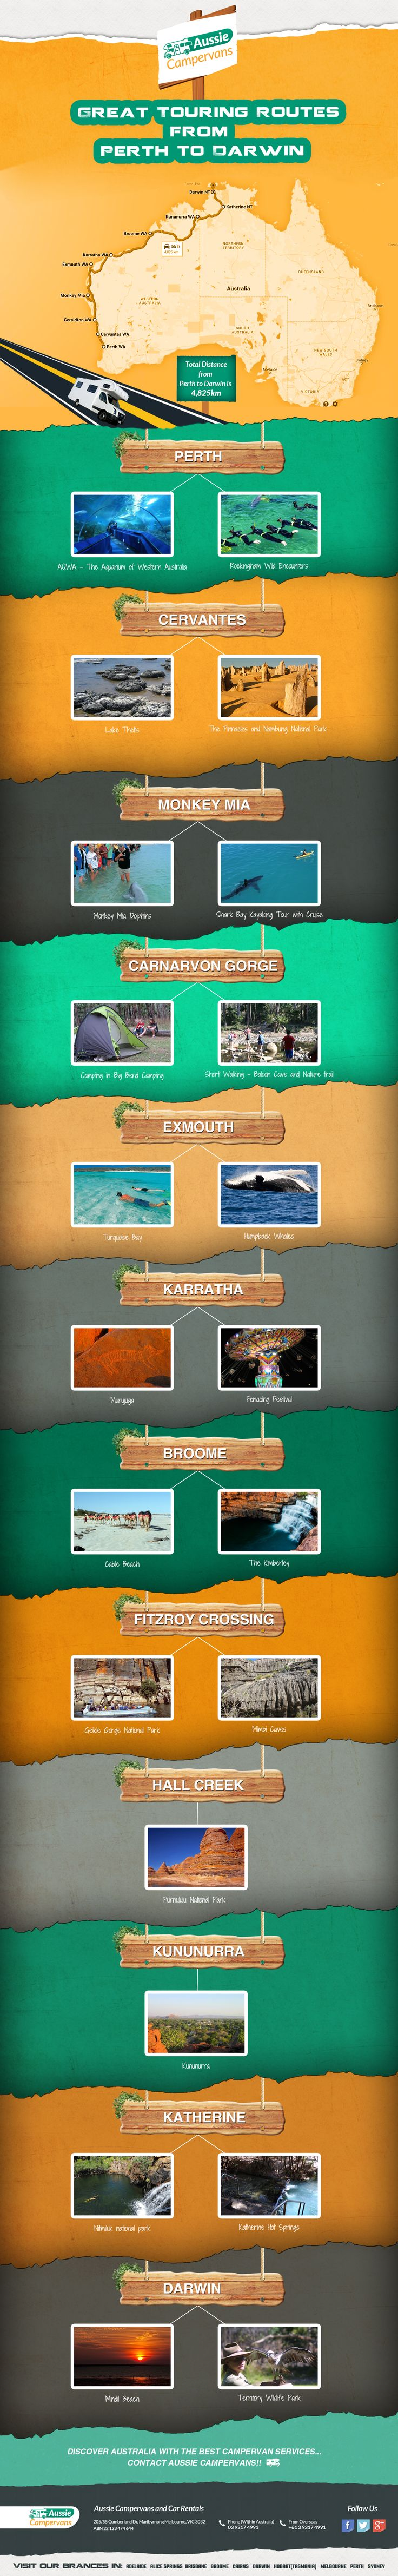 Great Touring Routes from Perth to Darwin #infographic #Travel #Tour